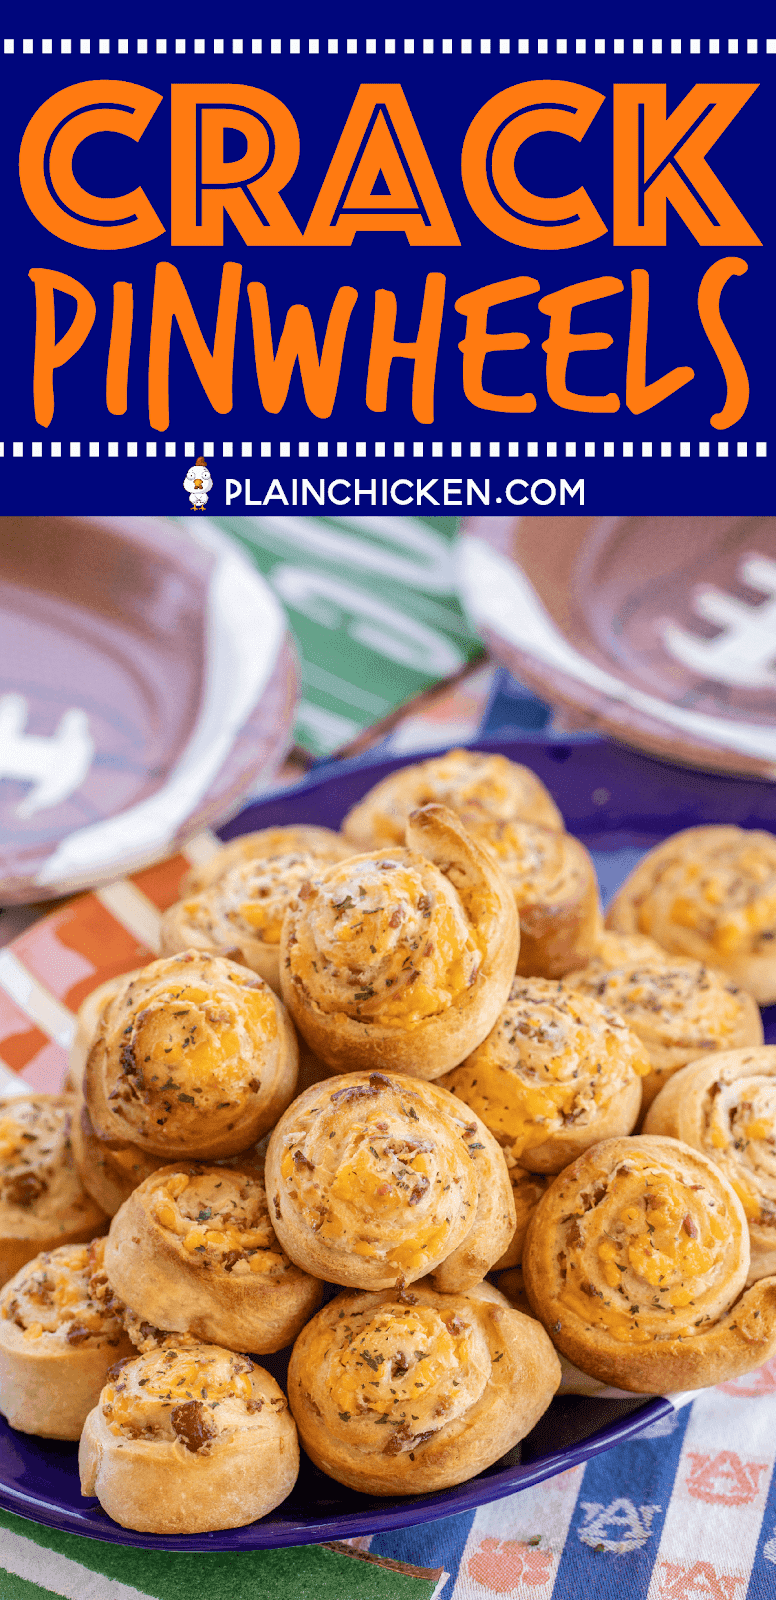 Crack Pinwheels - SO addictive!!! Ranch seasoning, cream cheese, cheddar cheese, and bacon baked in pizza dough - I could eat the whole batch! Great as an appetizer or with soup or stew. Tastes great hot out of the oven or at room temperature. These cheesy bread pinwheels don't last long! #cheddar #bacon #ranch #tailgating #tailgatingrecipes #bread #appetizer